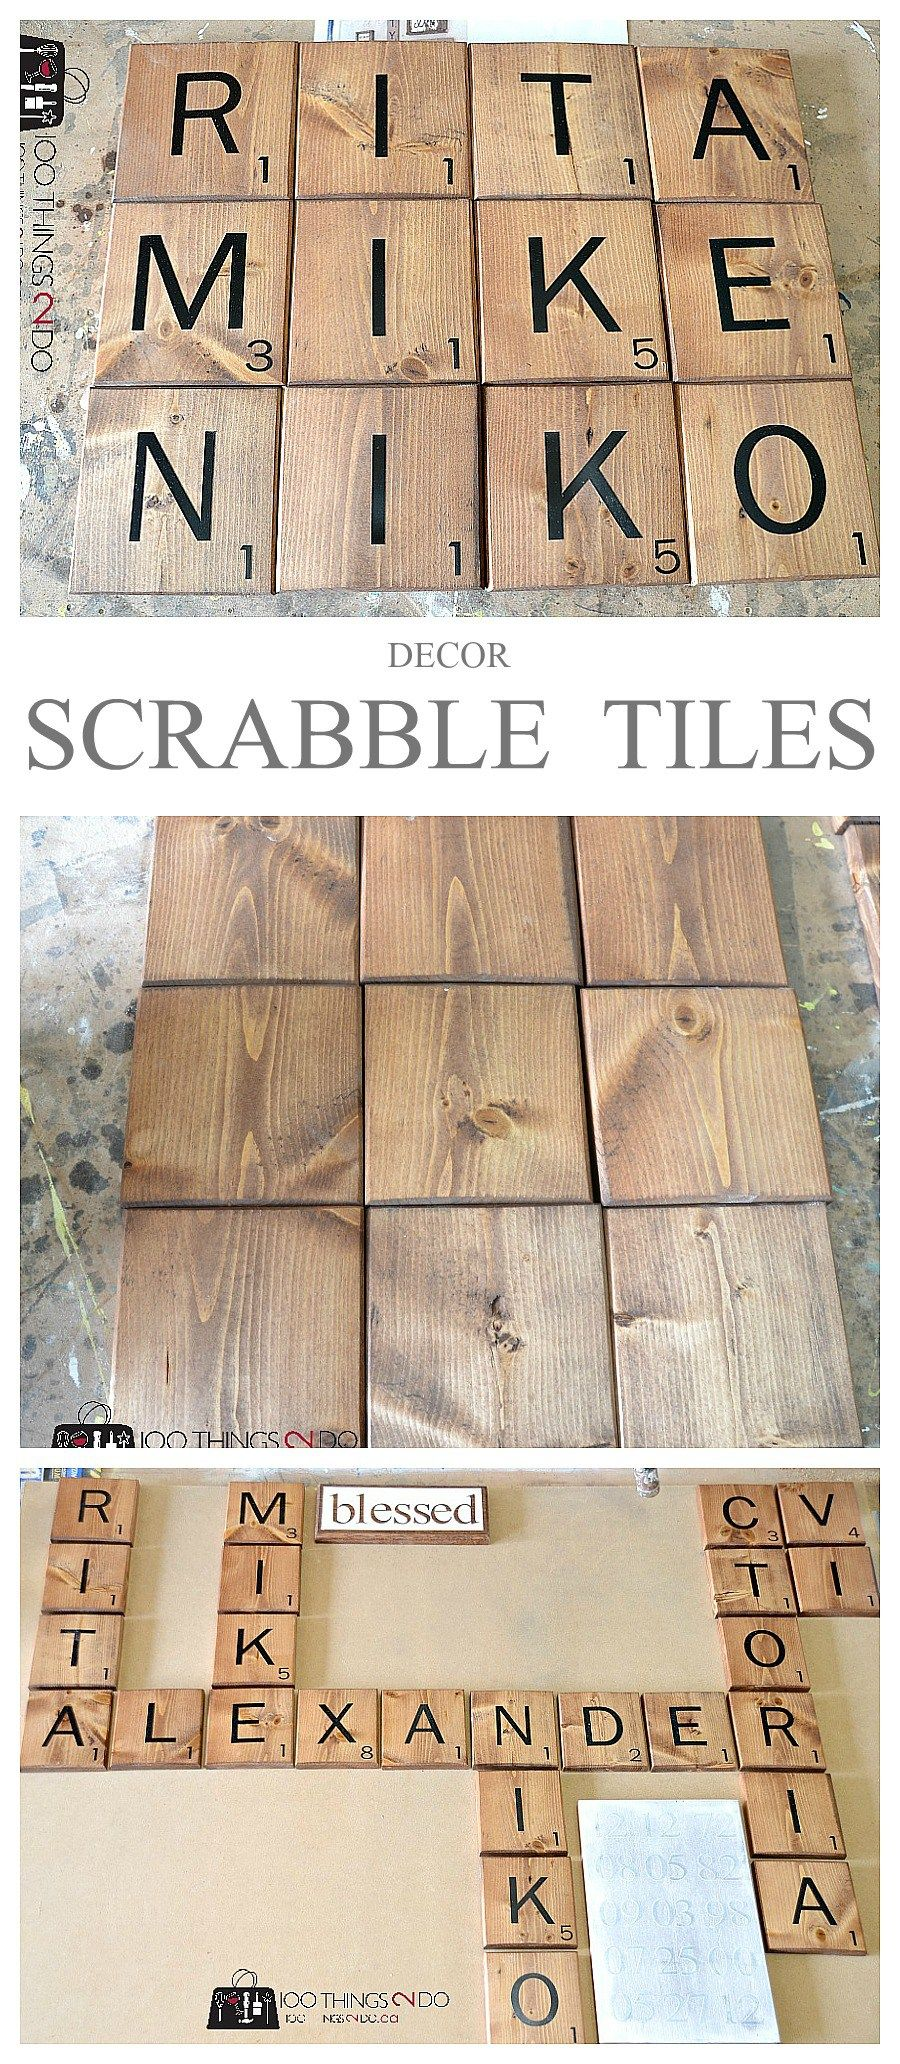 Scrabble Letter Wall Decor How To Make Scrabble Tiles Scrabble Tiles And Scrabble